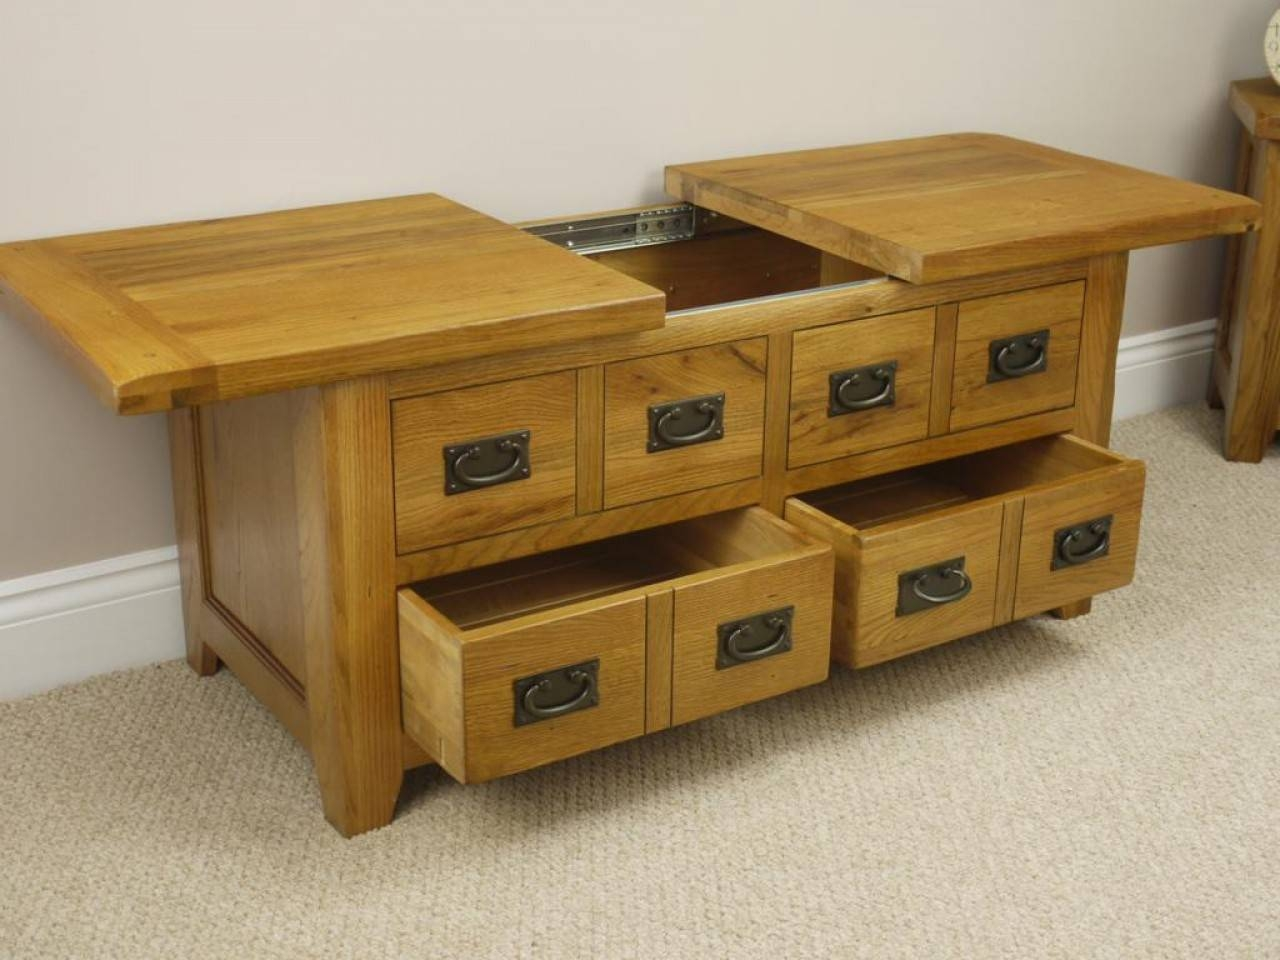 Large Oak Coffee Table With Drawers | Coffee Tables Decoration Within Large Low Oak Coffee Tables (View 9 of 30)